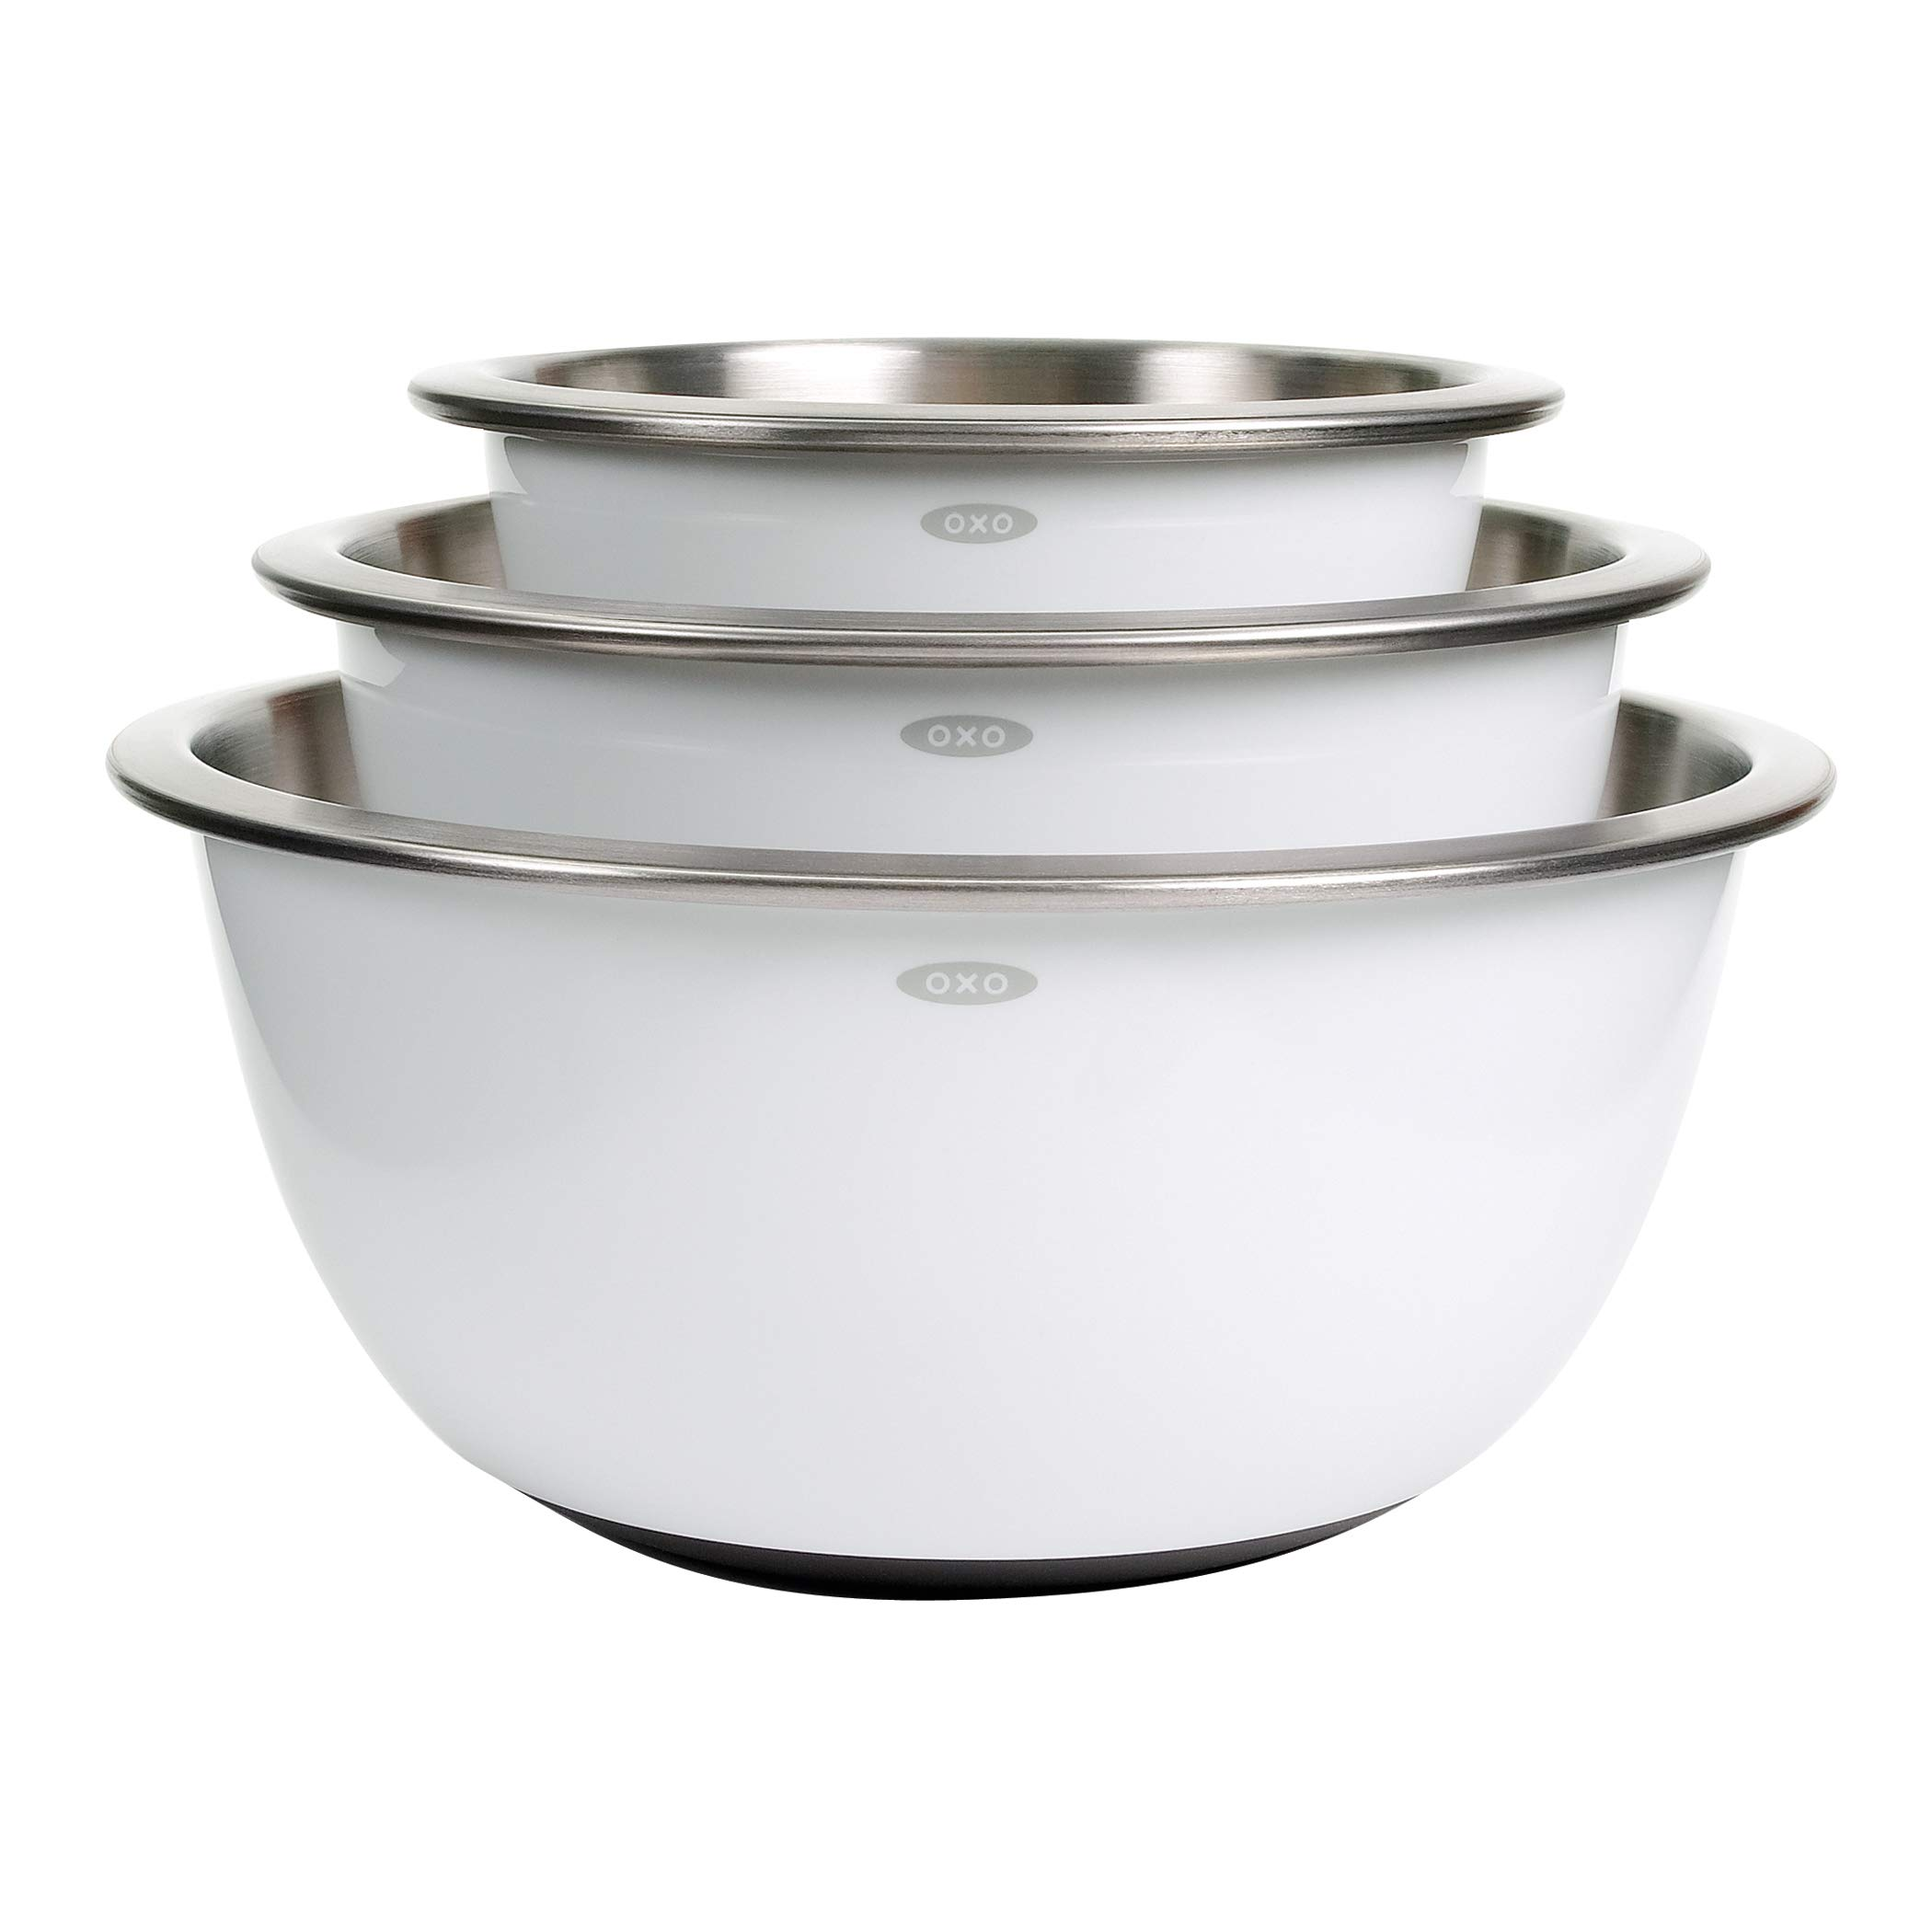 OXO 1107600 Good Grips 3-Piece Stainless-Steel Mixing Bowl Set, White by OXO